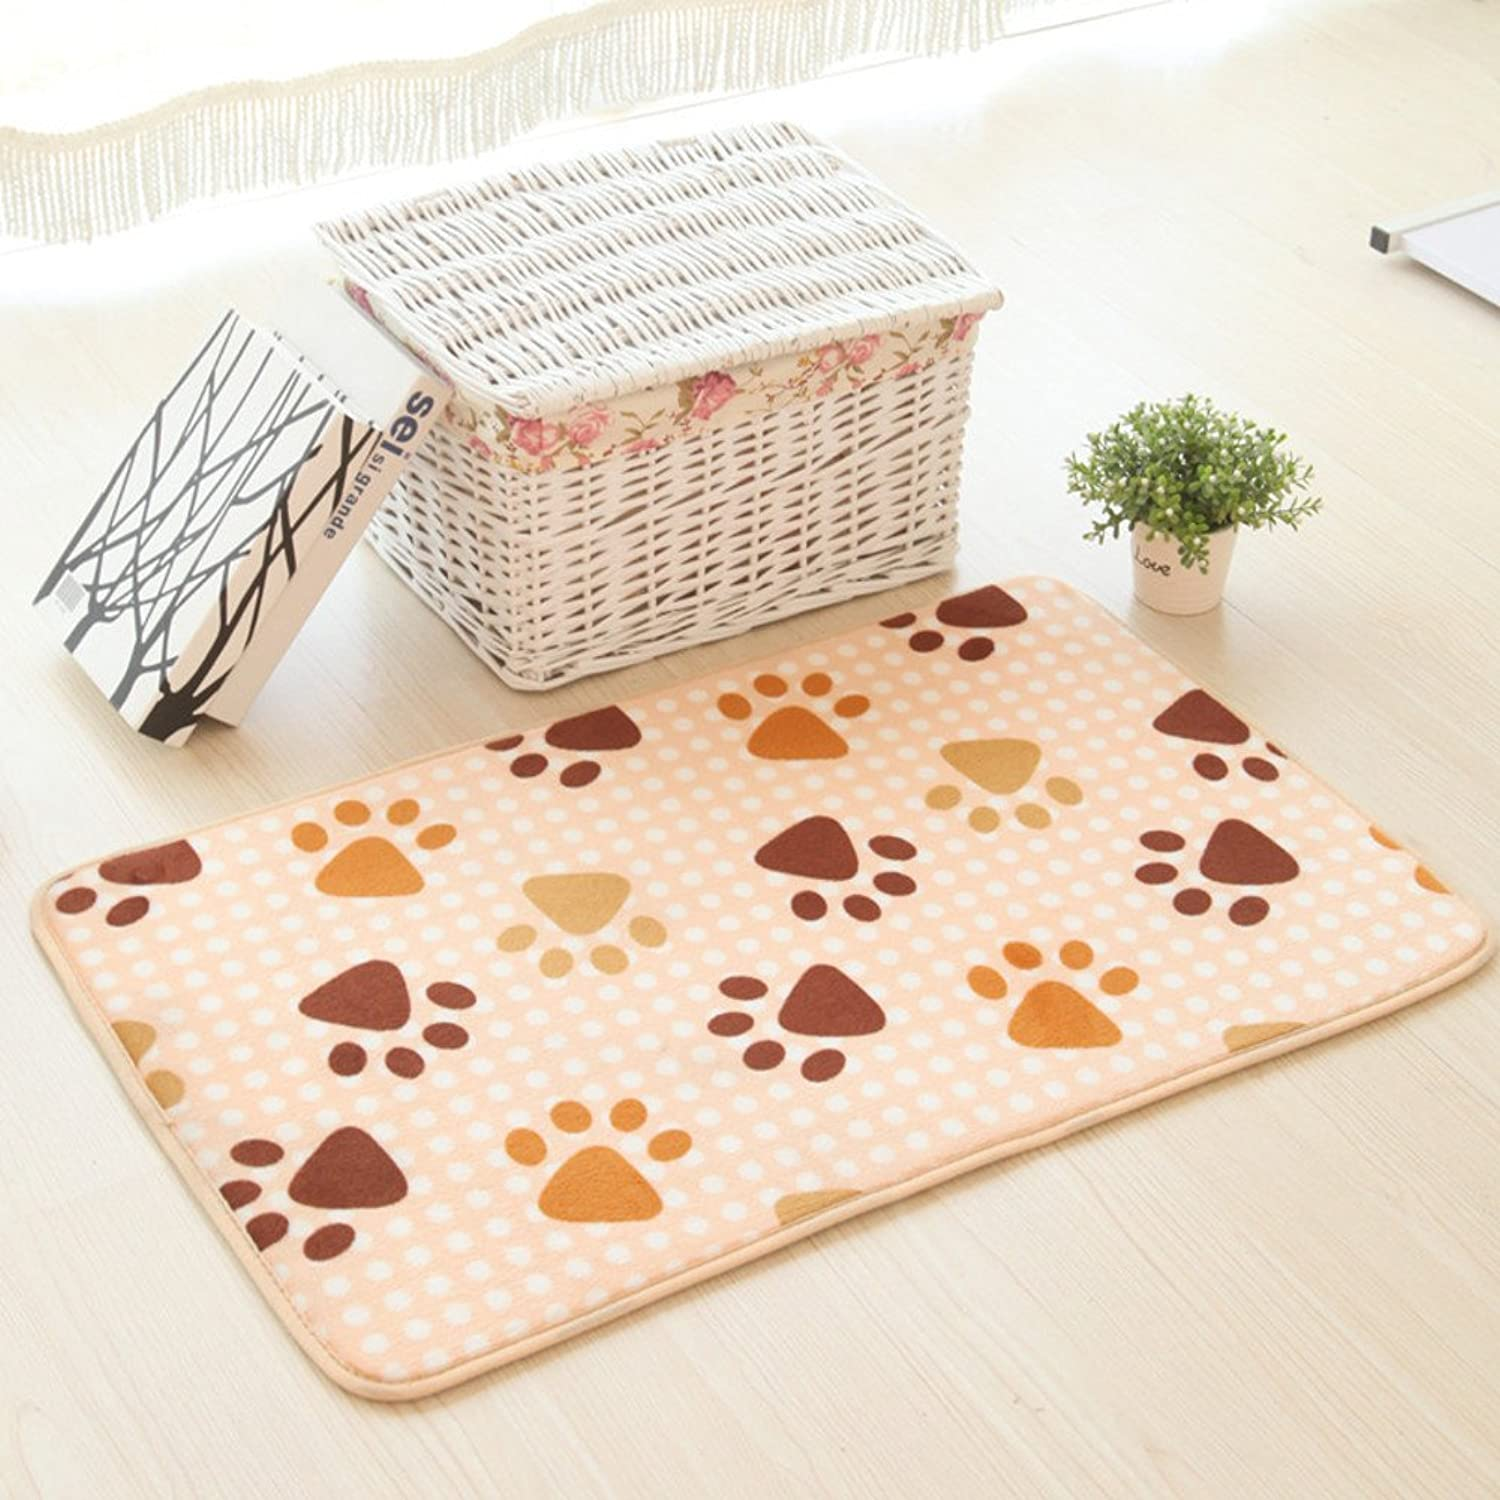 Fine Fiber matsblankets, Rectangular Floor mat,Bedroom,Mat Door mat Kitchen,Living Room,Bathroom,Bathroom,Pad-E 140x200cm(55x79inch)